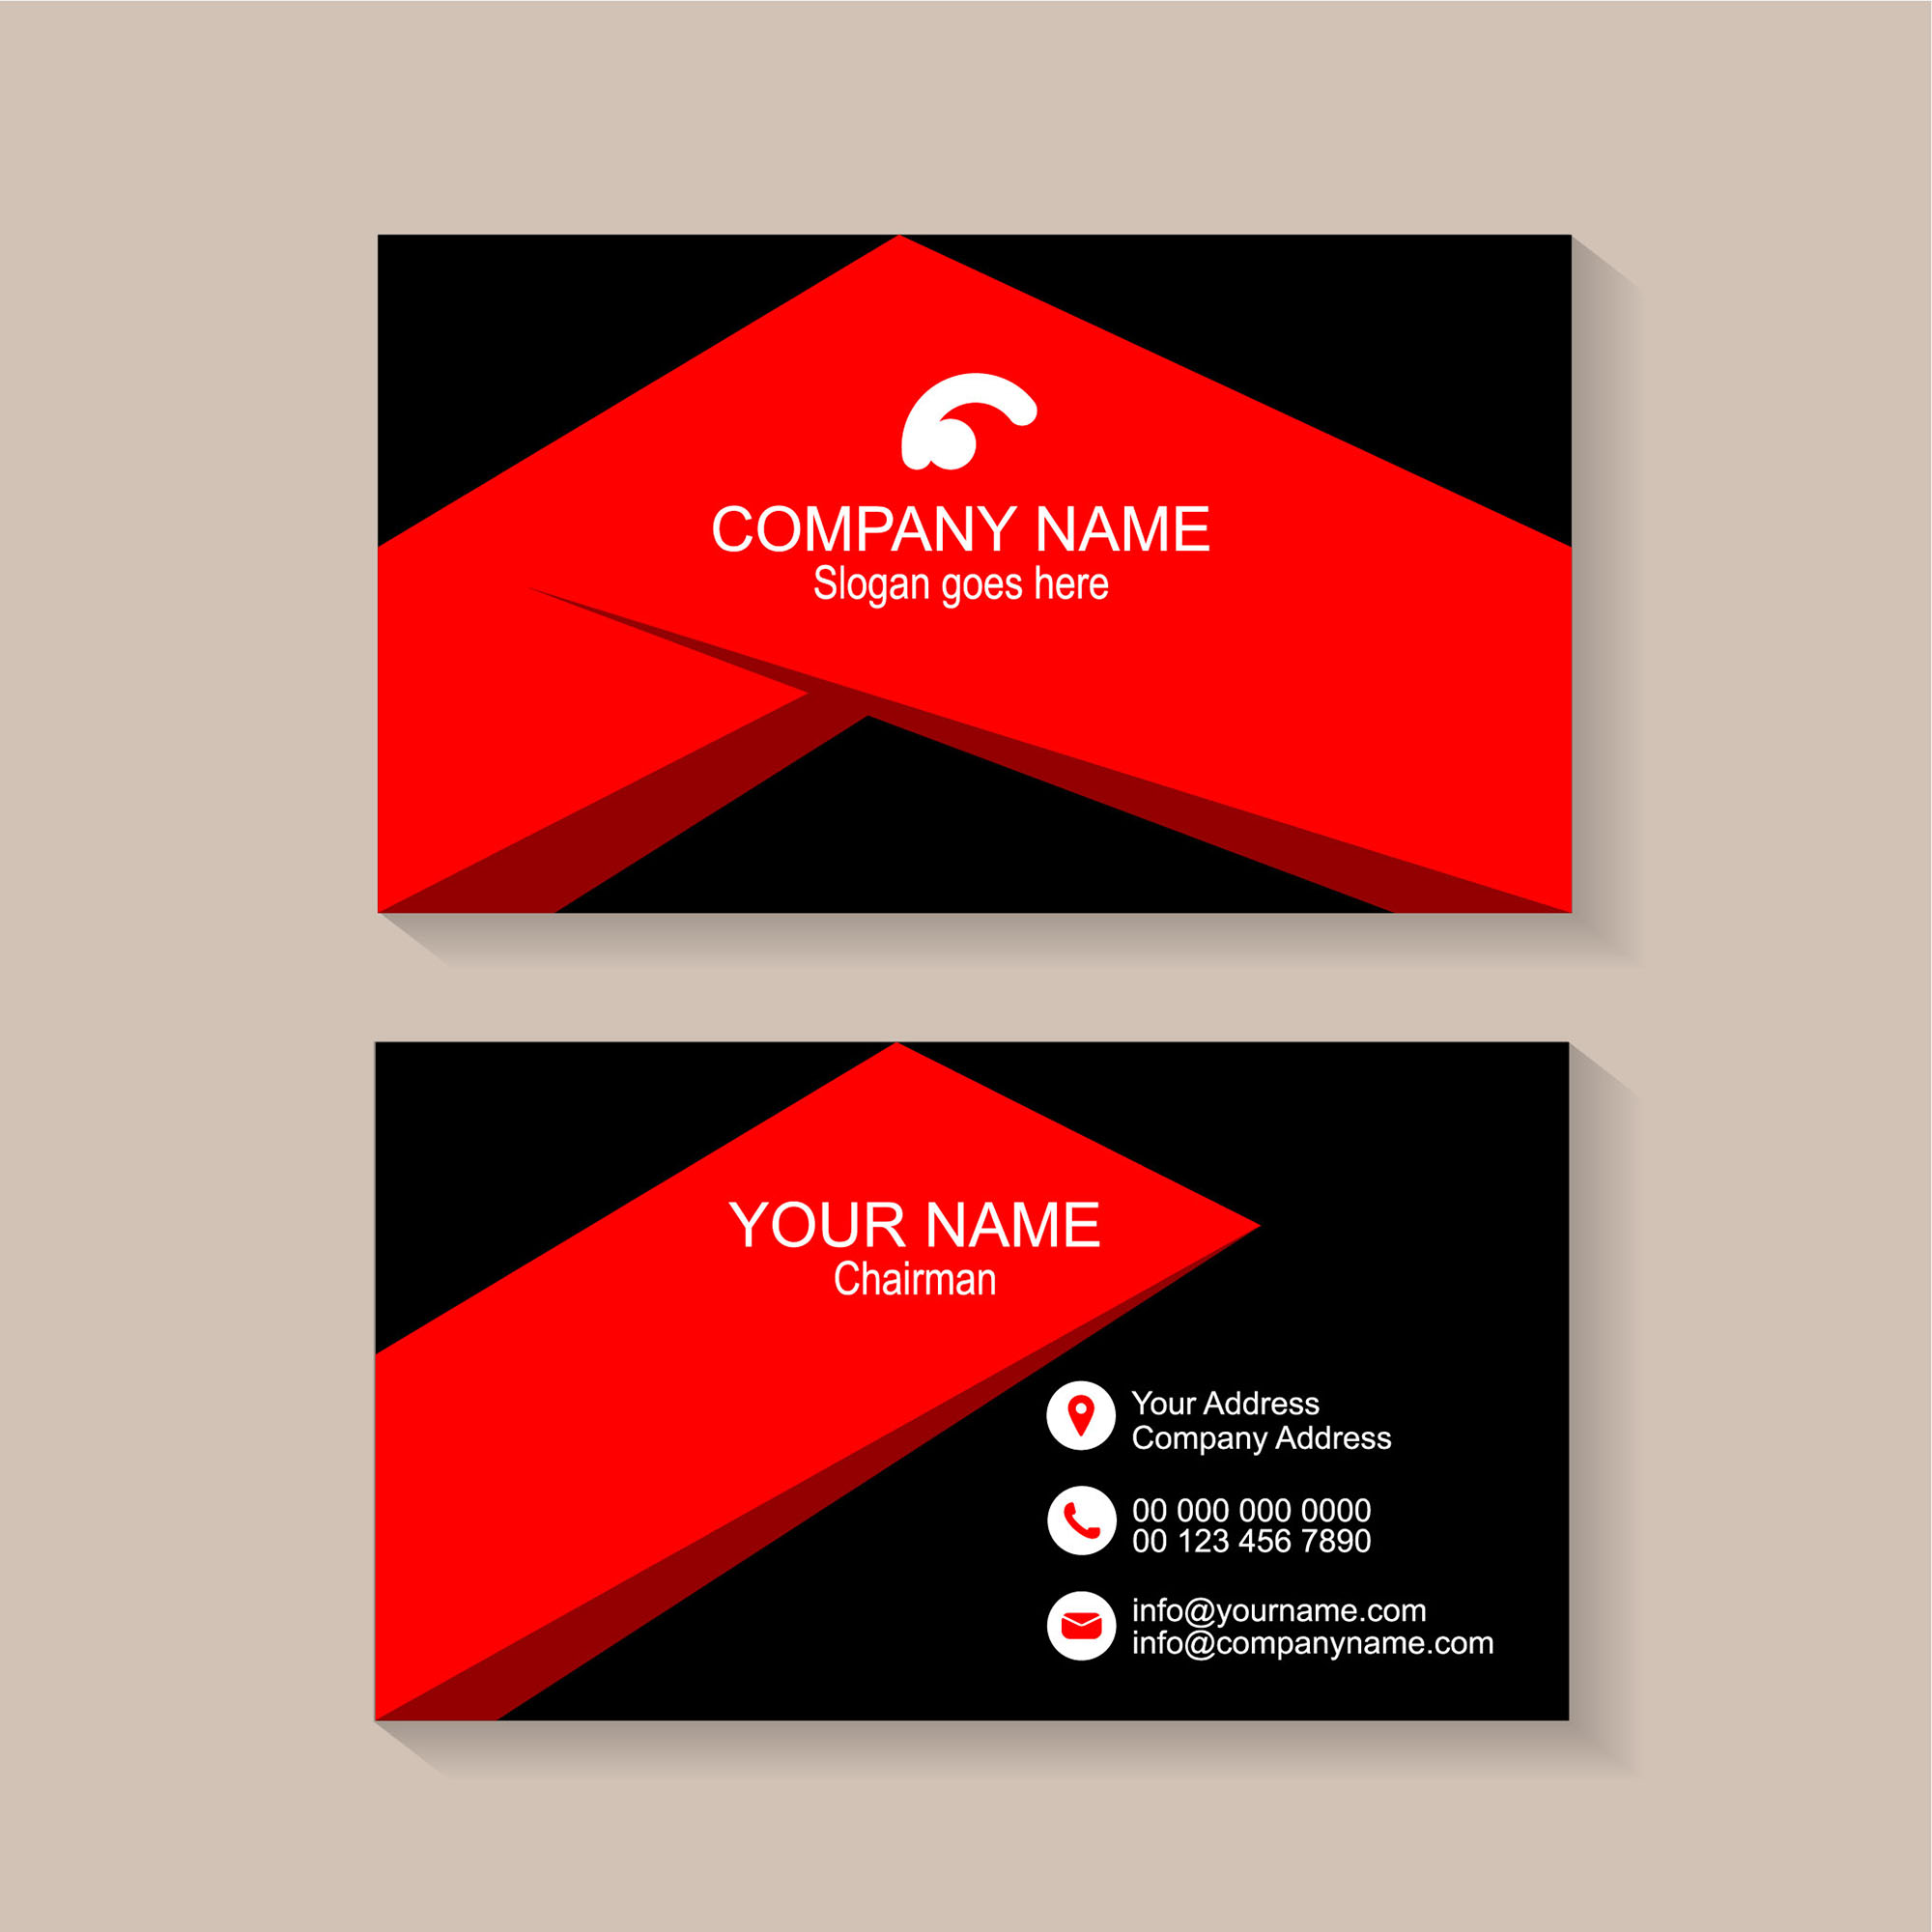 Business card template design free download wisxi business card business cards business card design business card template design templates accmission Gallery